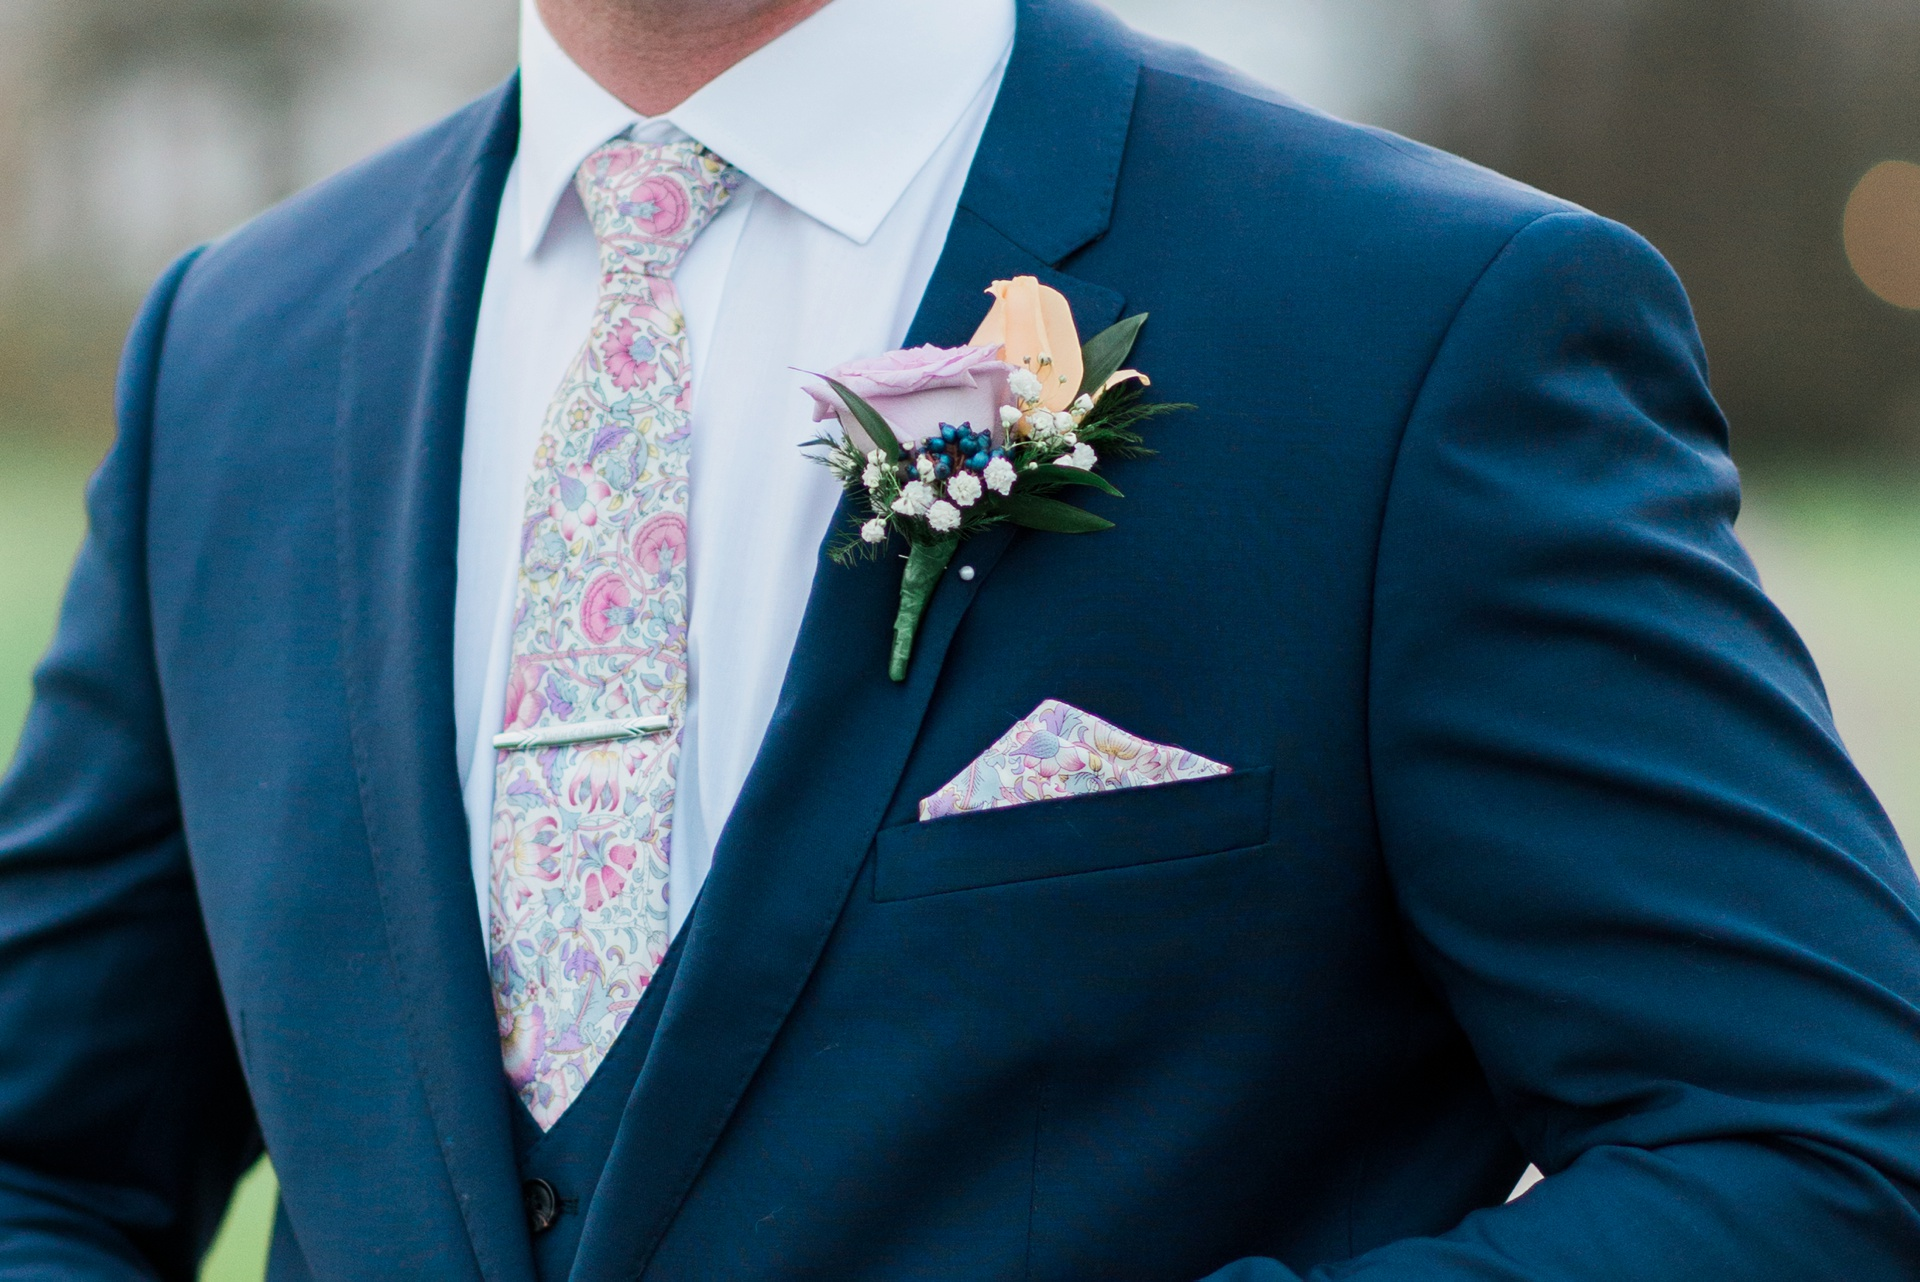 Grooms tie, pocket square and boutonniere